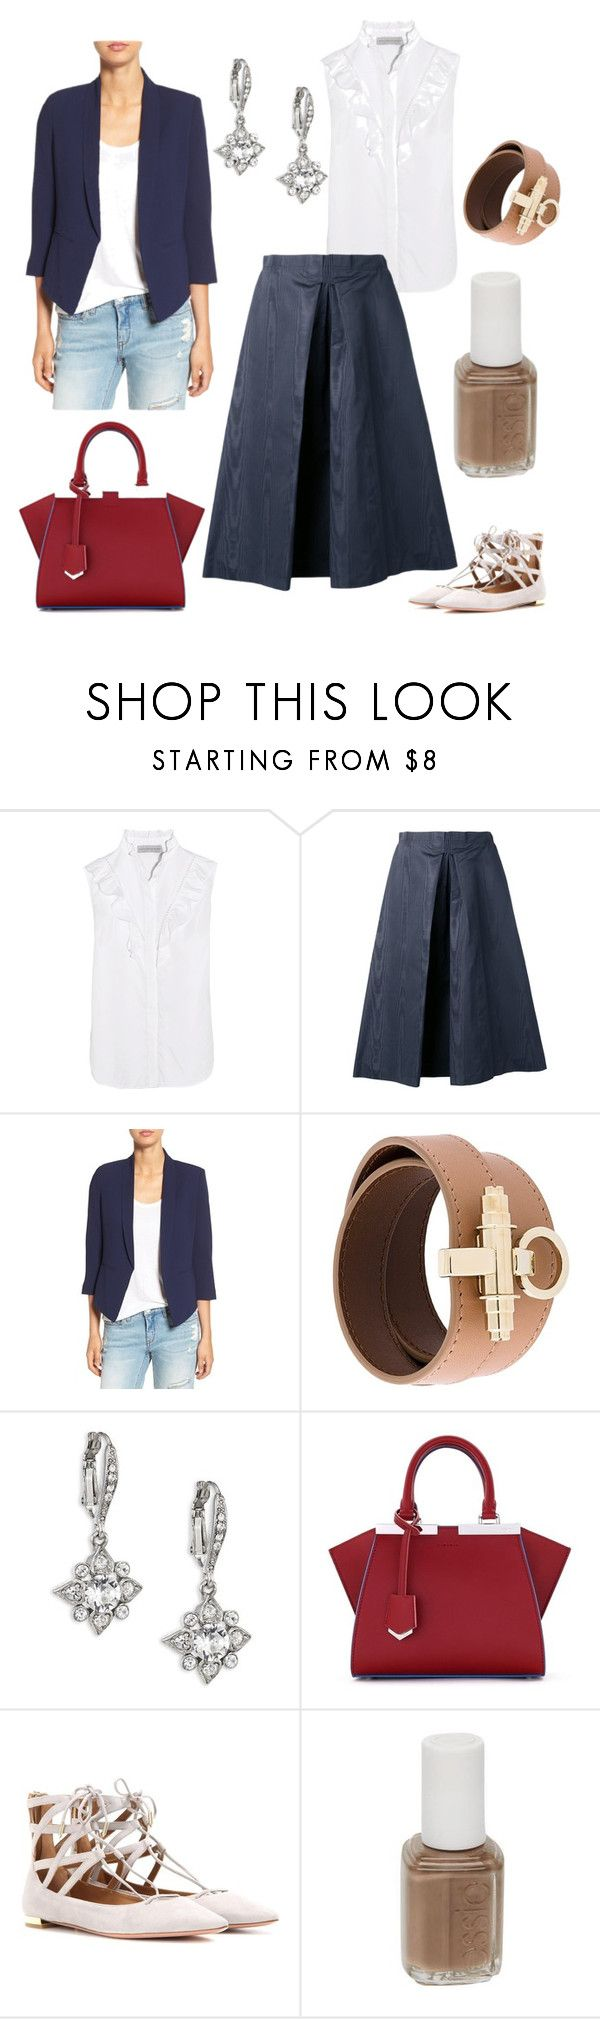 """Fashion inspo: 14/9/2016"" by antiadamo on Polyvore featuring STELLA McCARTNEY, Nina Ricci, Mural, Givenchy, Oscar de la Renta, Fendi, Aquazzura and Essie"